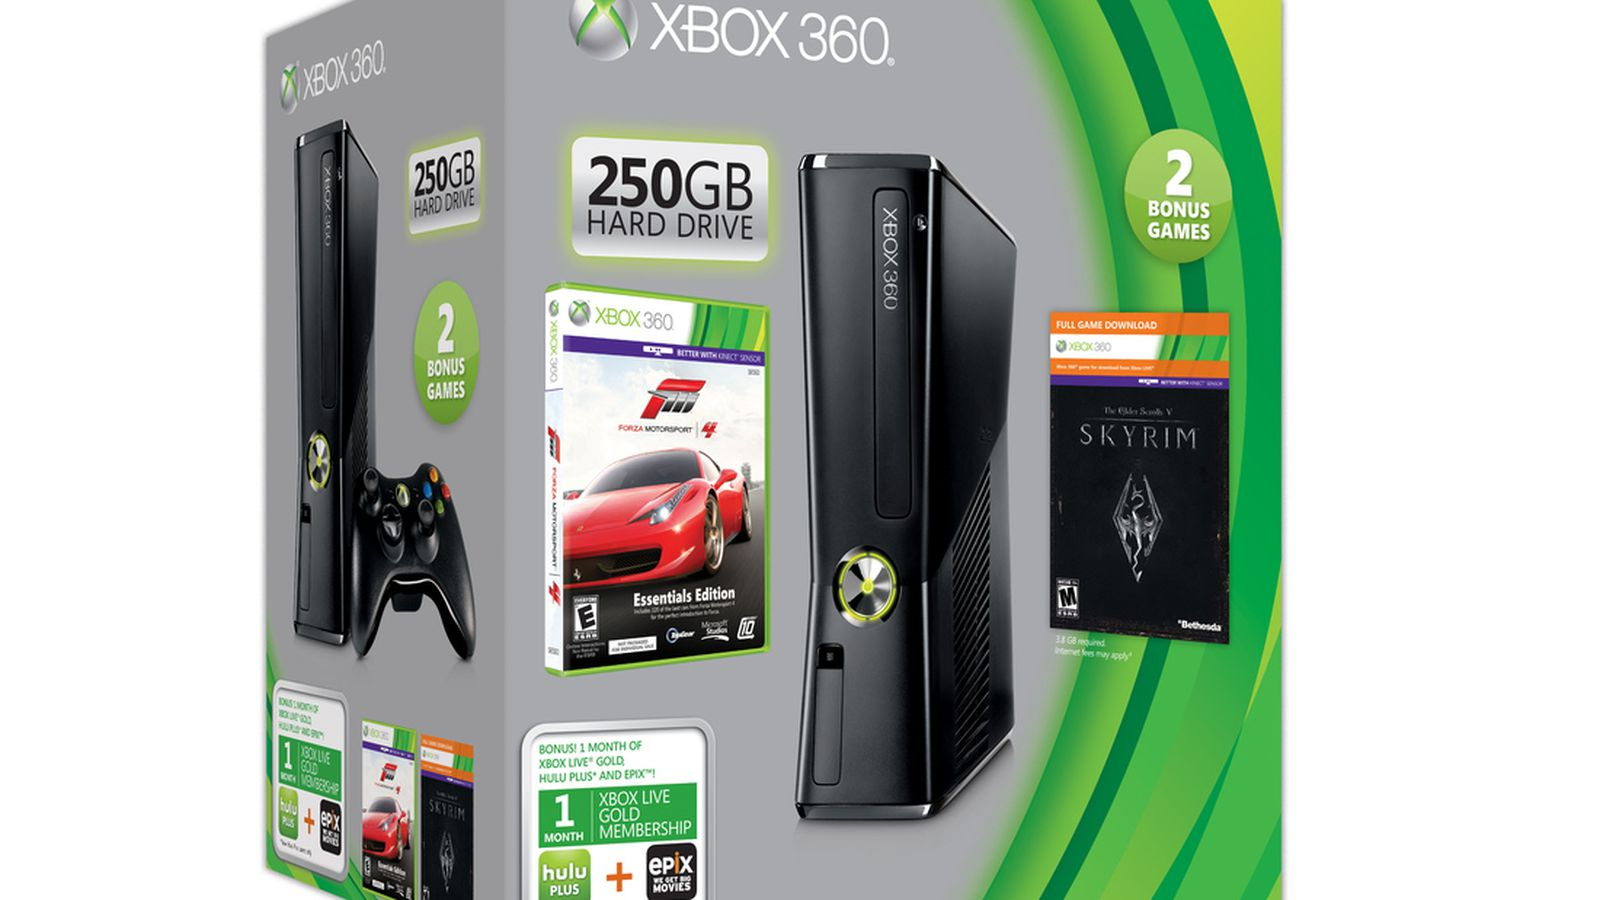 Xbox 360 with kinect bundle deals for black friday 2018